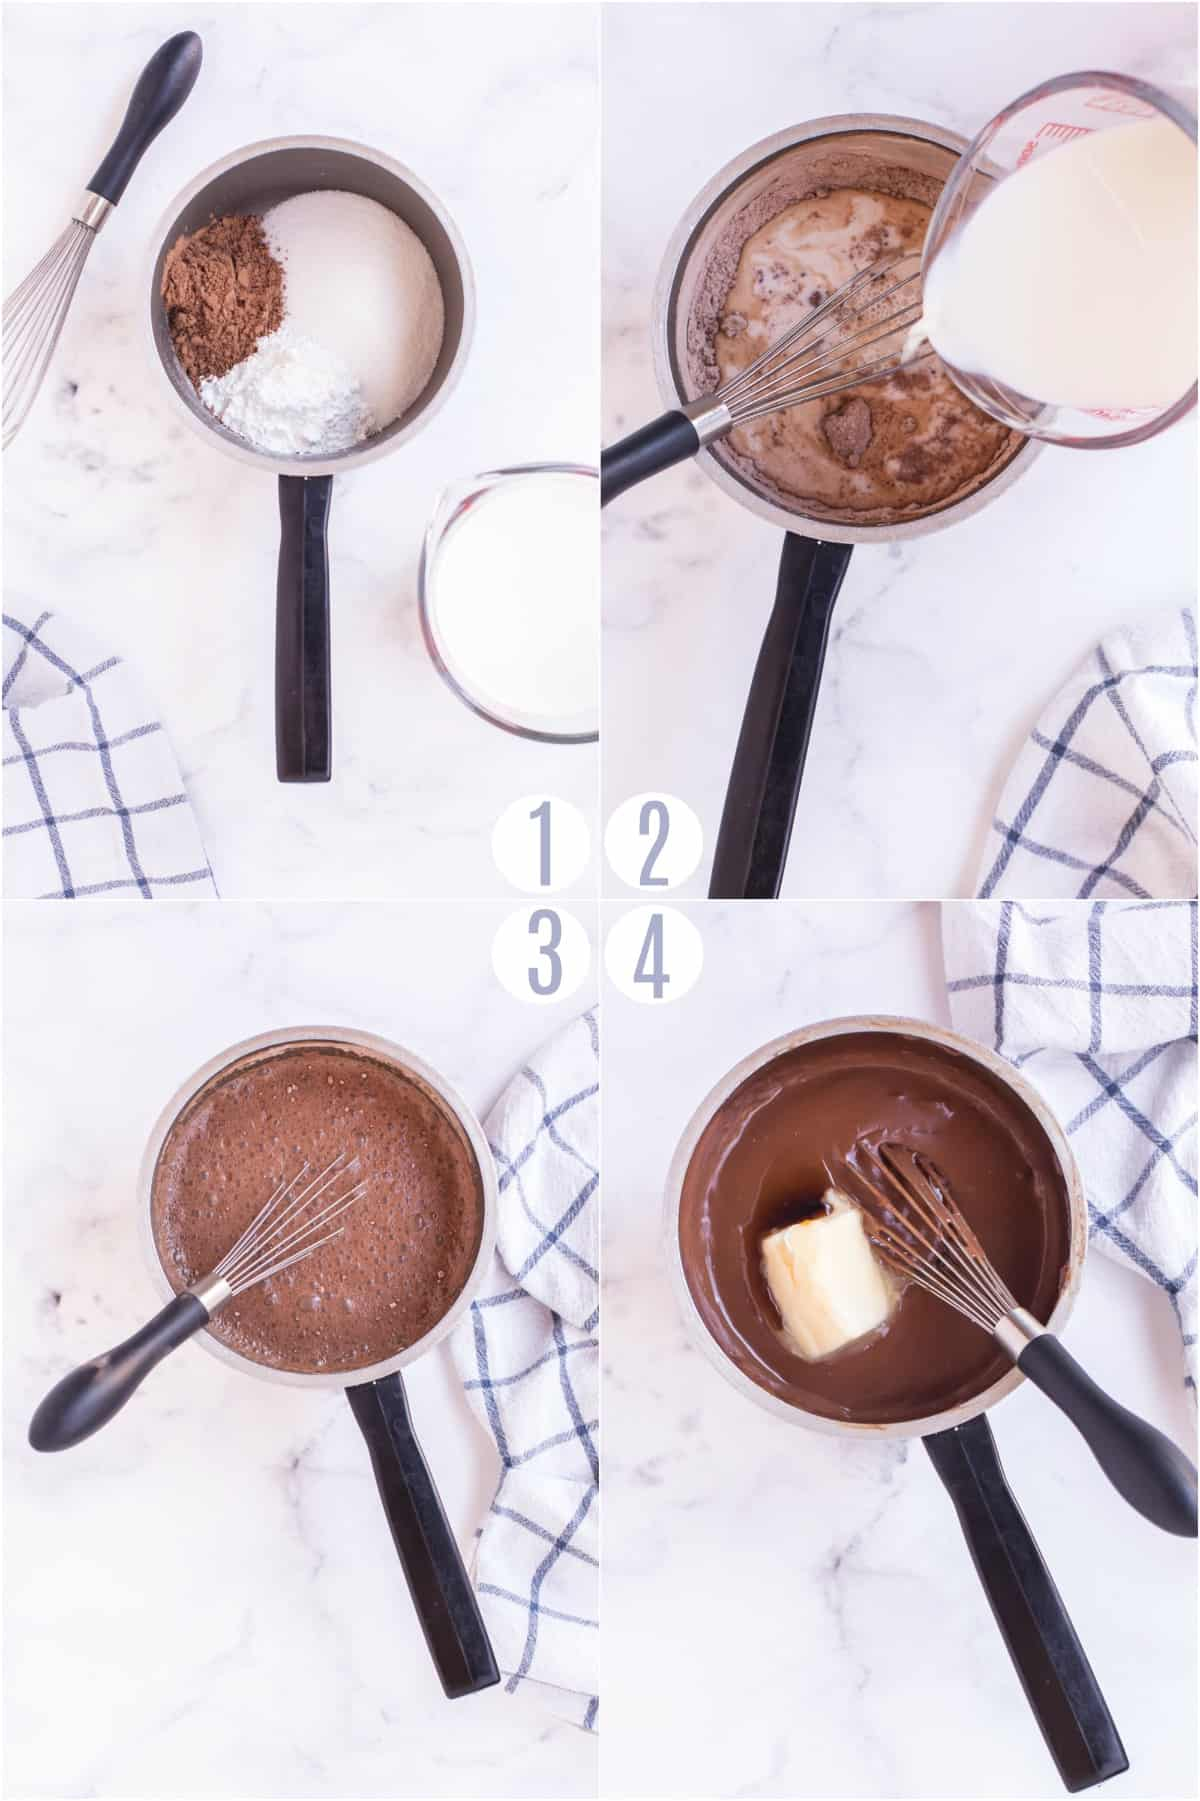 Step by step photos showing how to make homemade chocolate pudding.